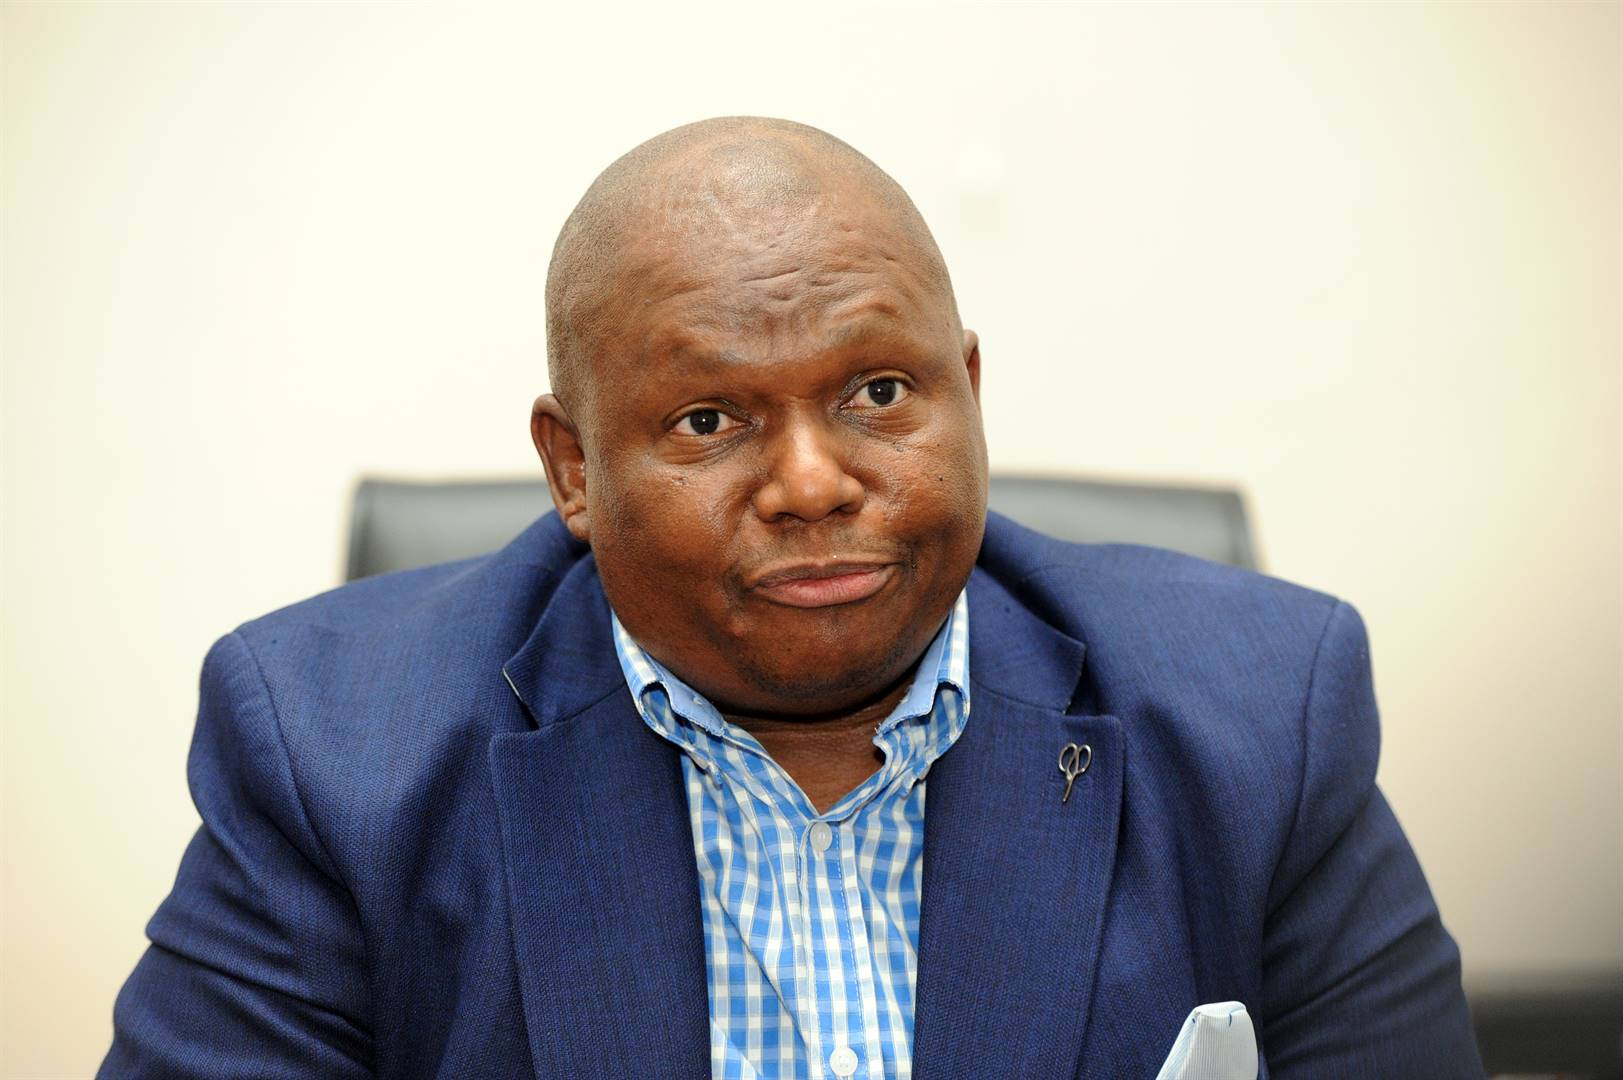 DA welcomes the removal of the most destructive mayor in Nelson Mandela Bay's history